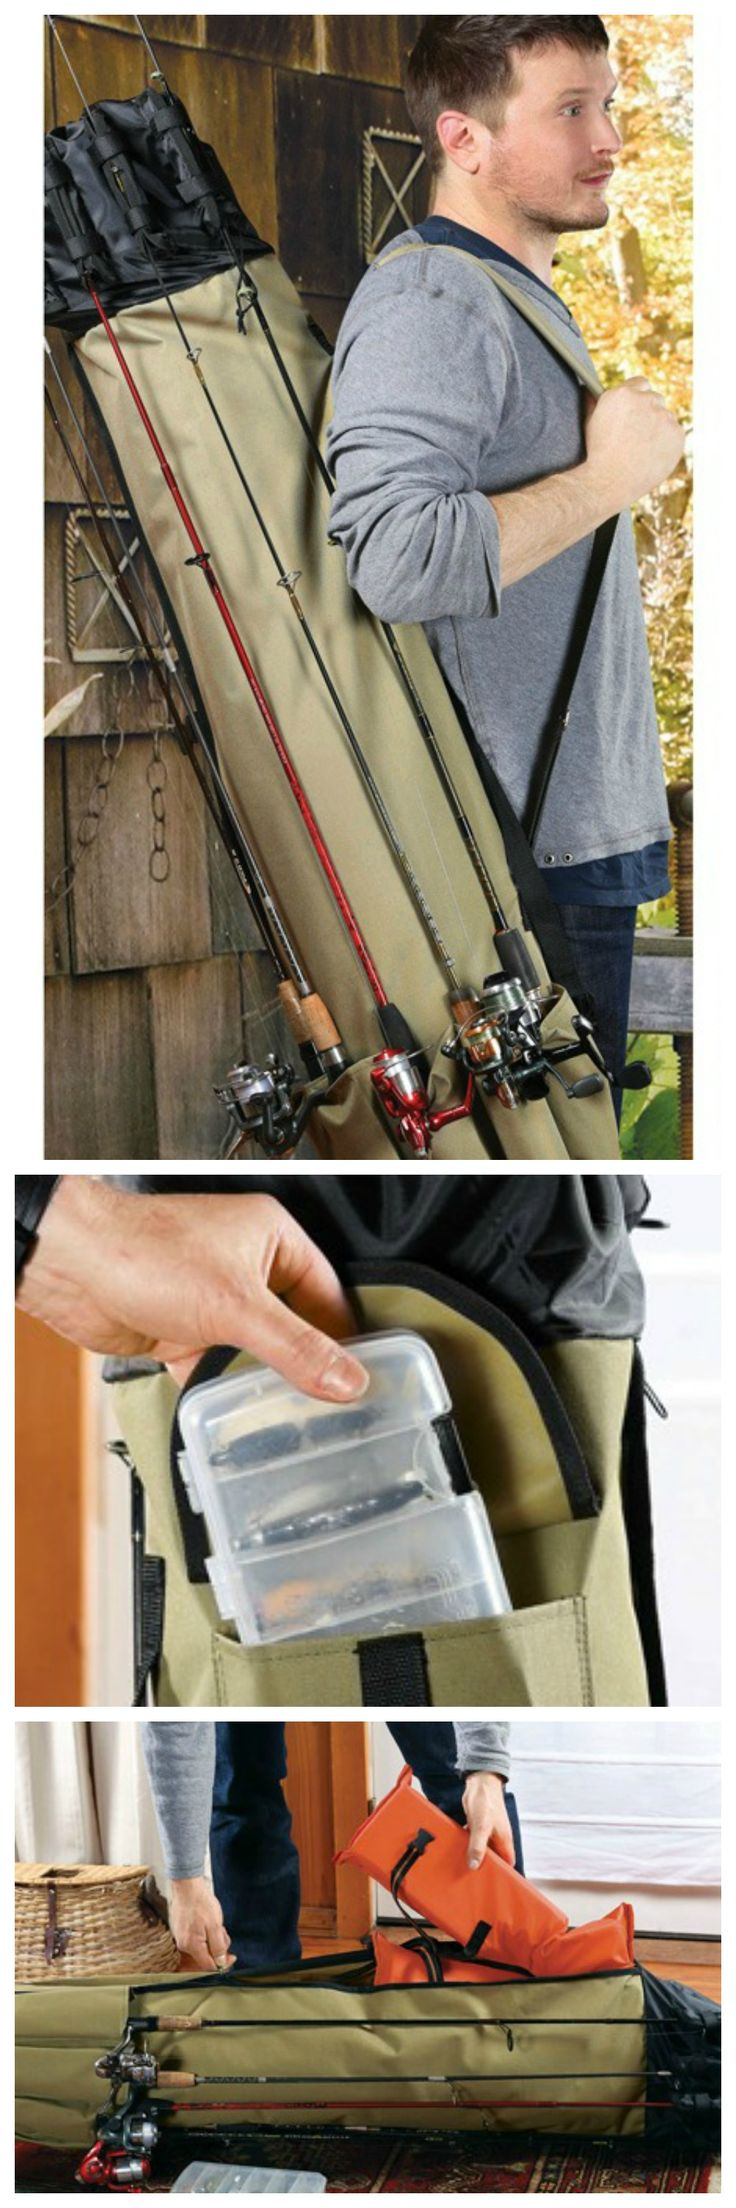 How to store Fishing Rods - Fishing Rod Carrying Case!